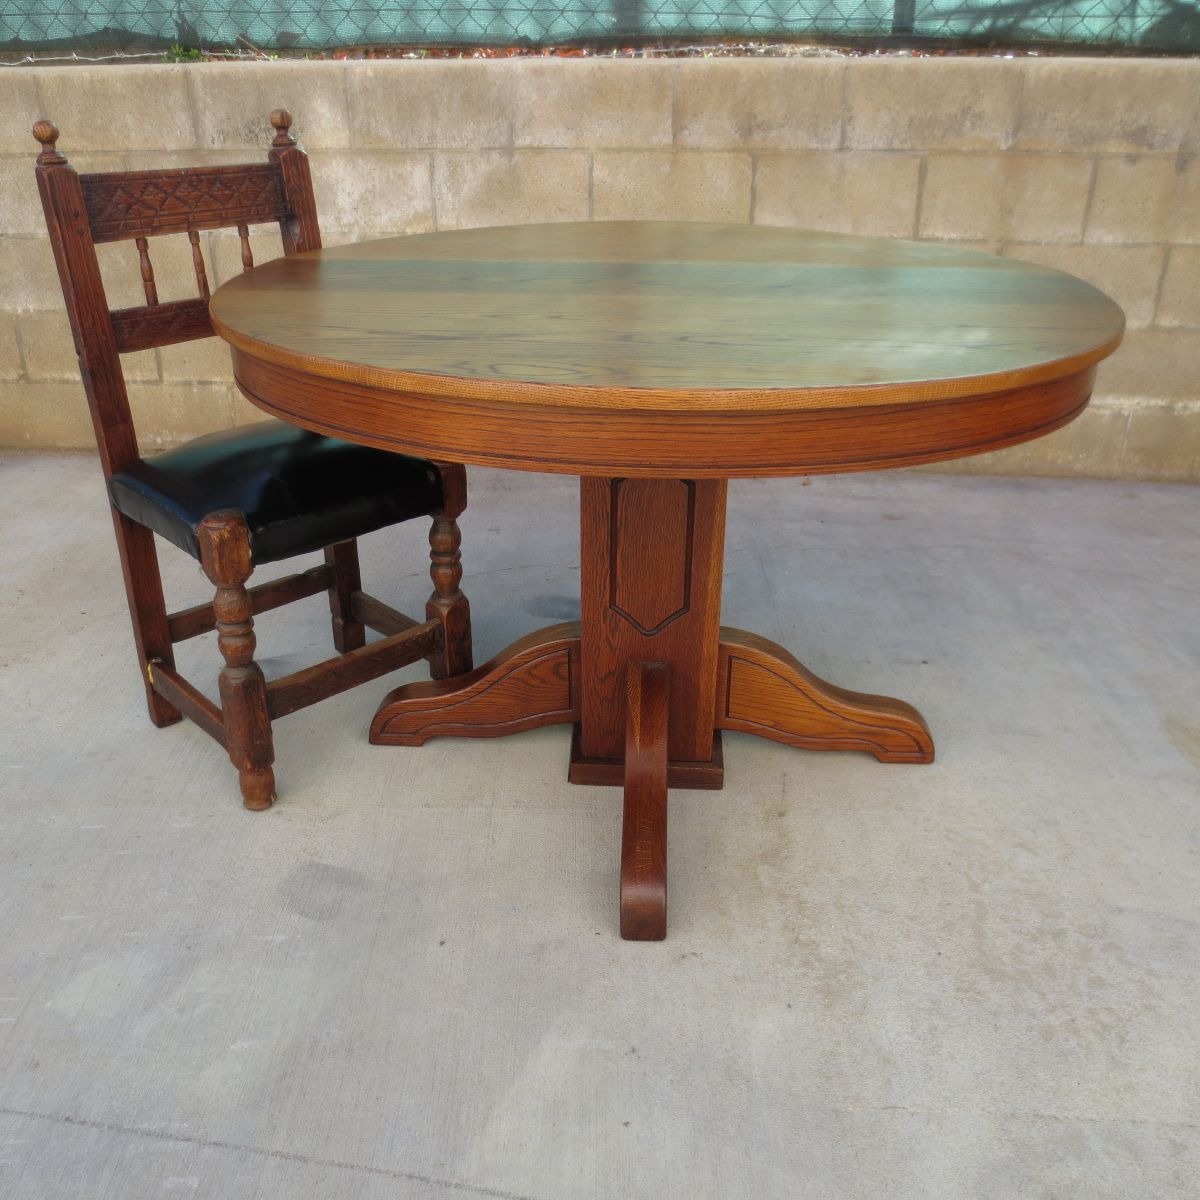 Round Kitchen Table Vintage - Choosing the right kitchen table set is  really significant as far as furniture goes. - Pin By HouseFurniture On DINING FURNITURE Pinterest Round Dining